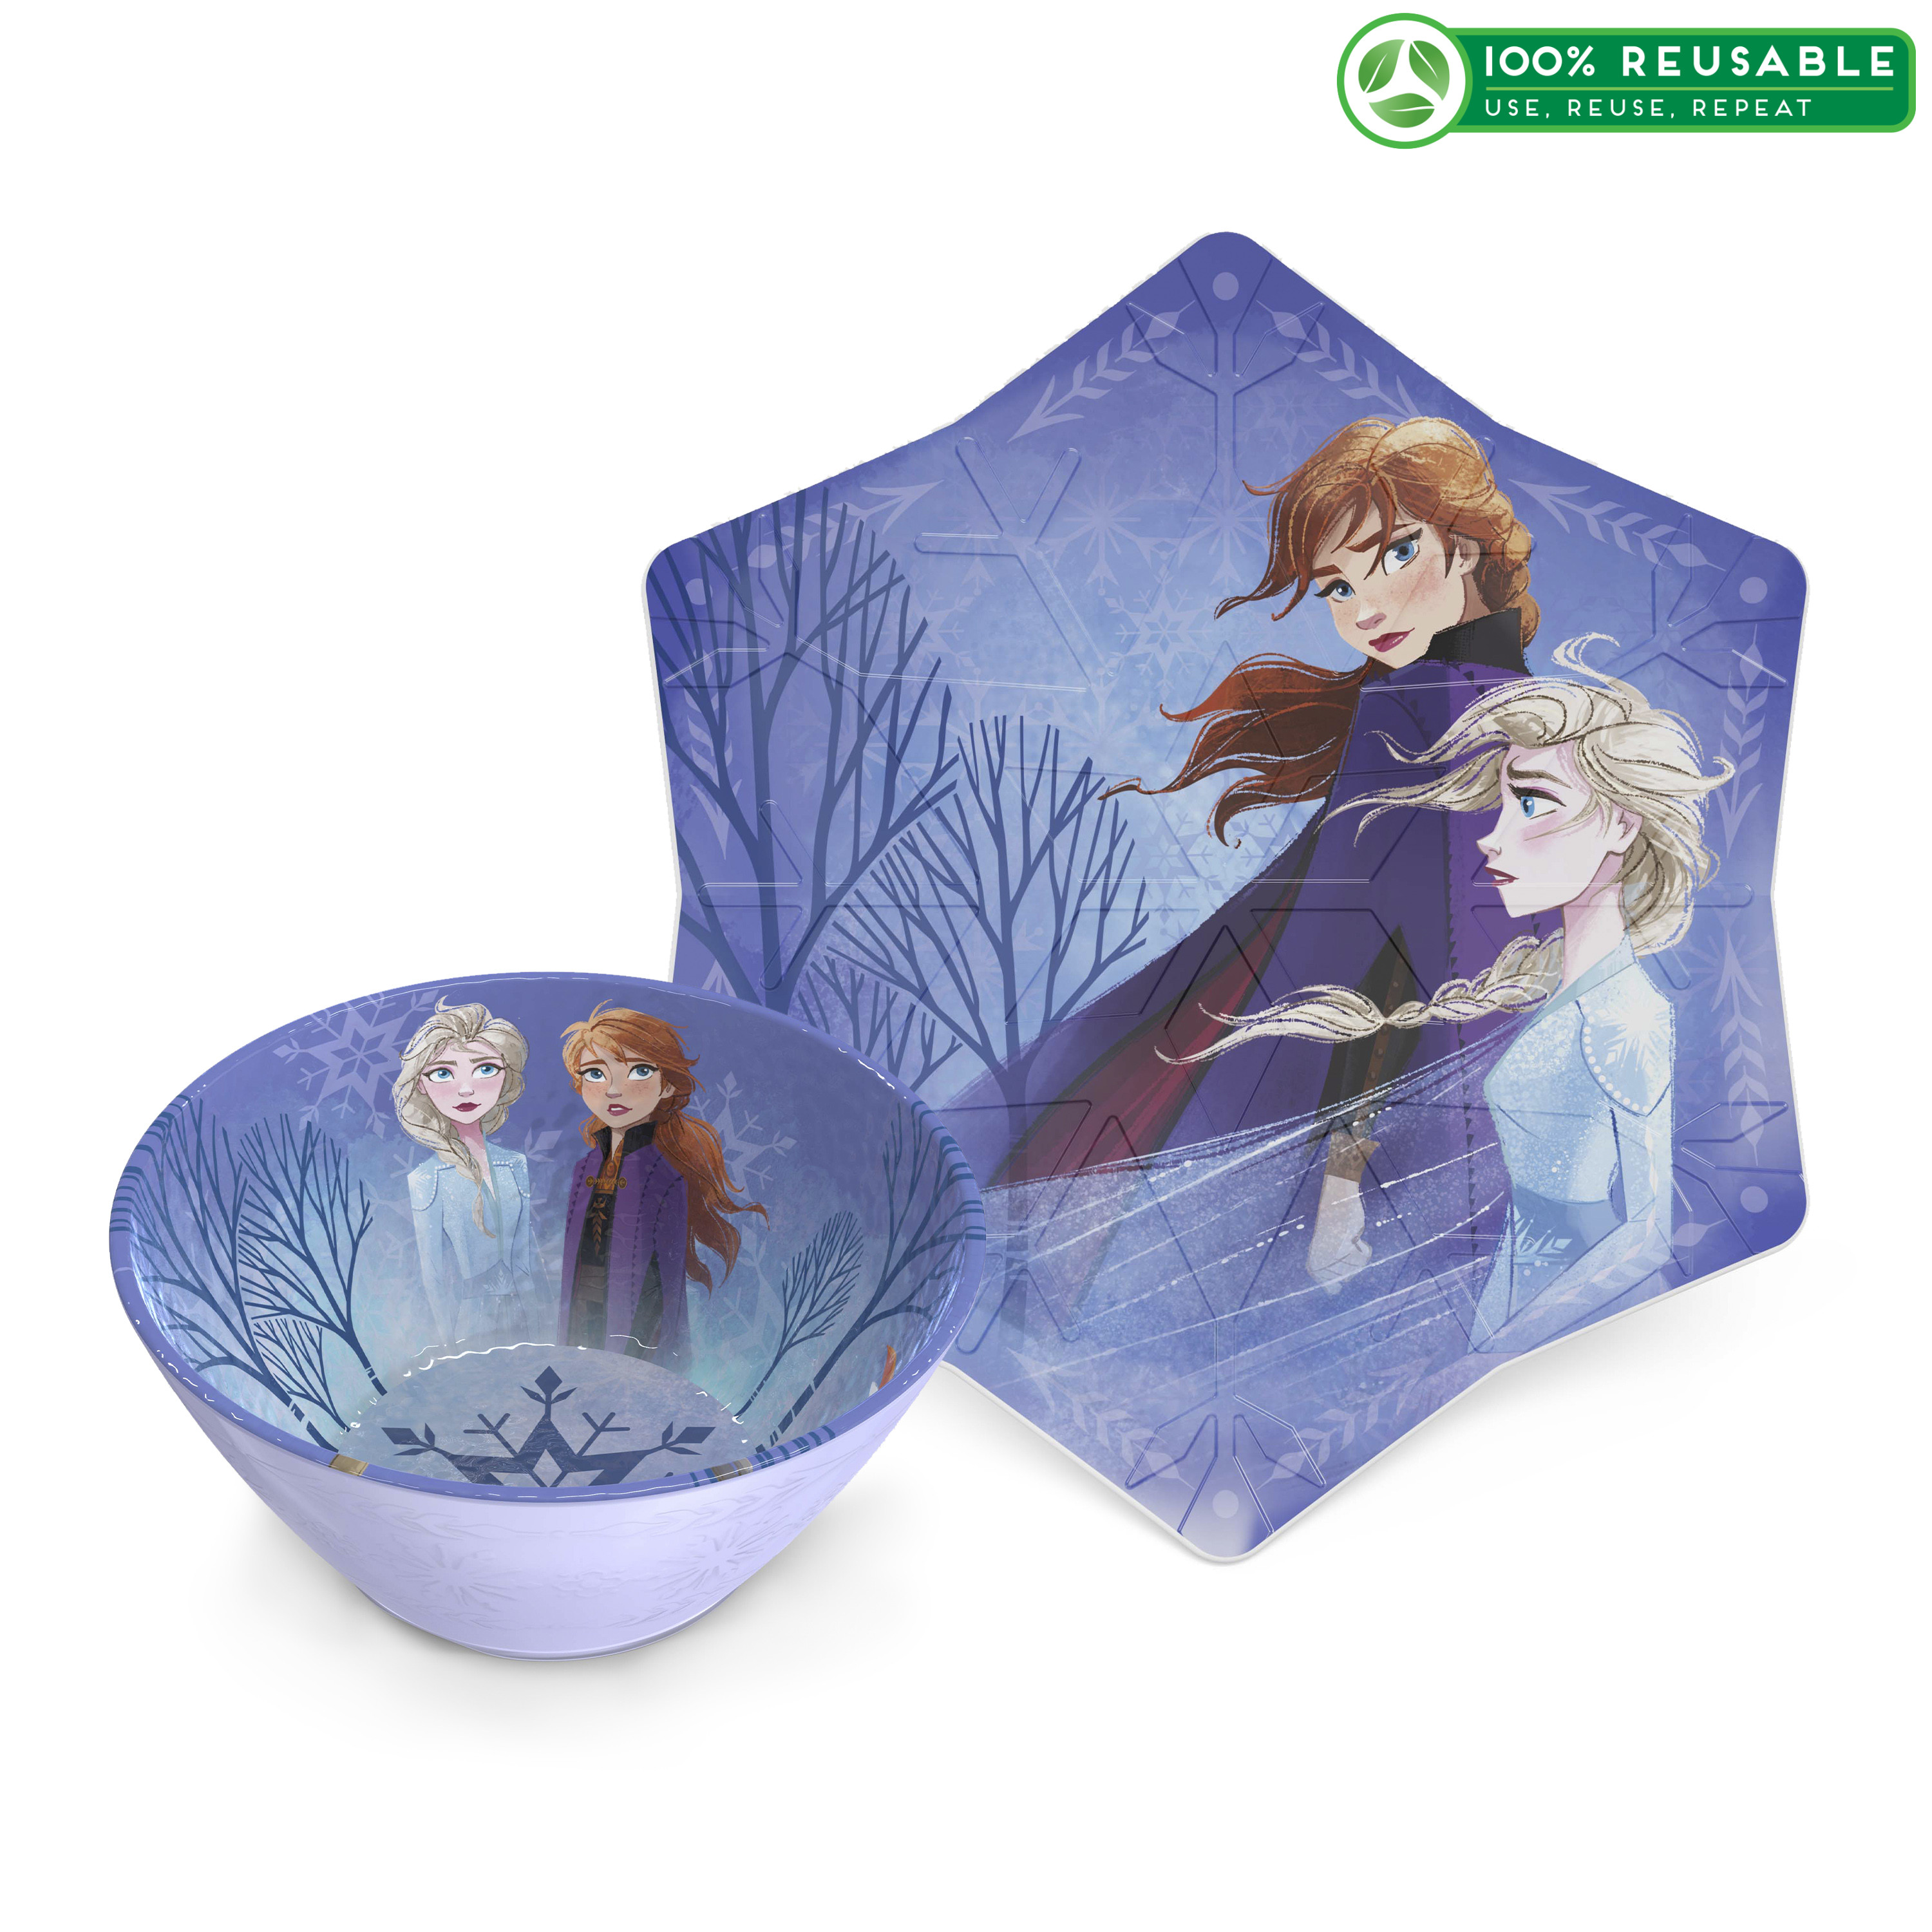 Disney Frozen 2 Movie Kid's Dinnerware Set, Anna and Elsa, 2-piece set slideshow image 1